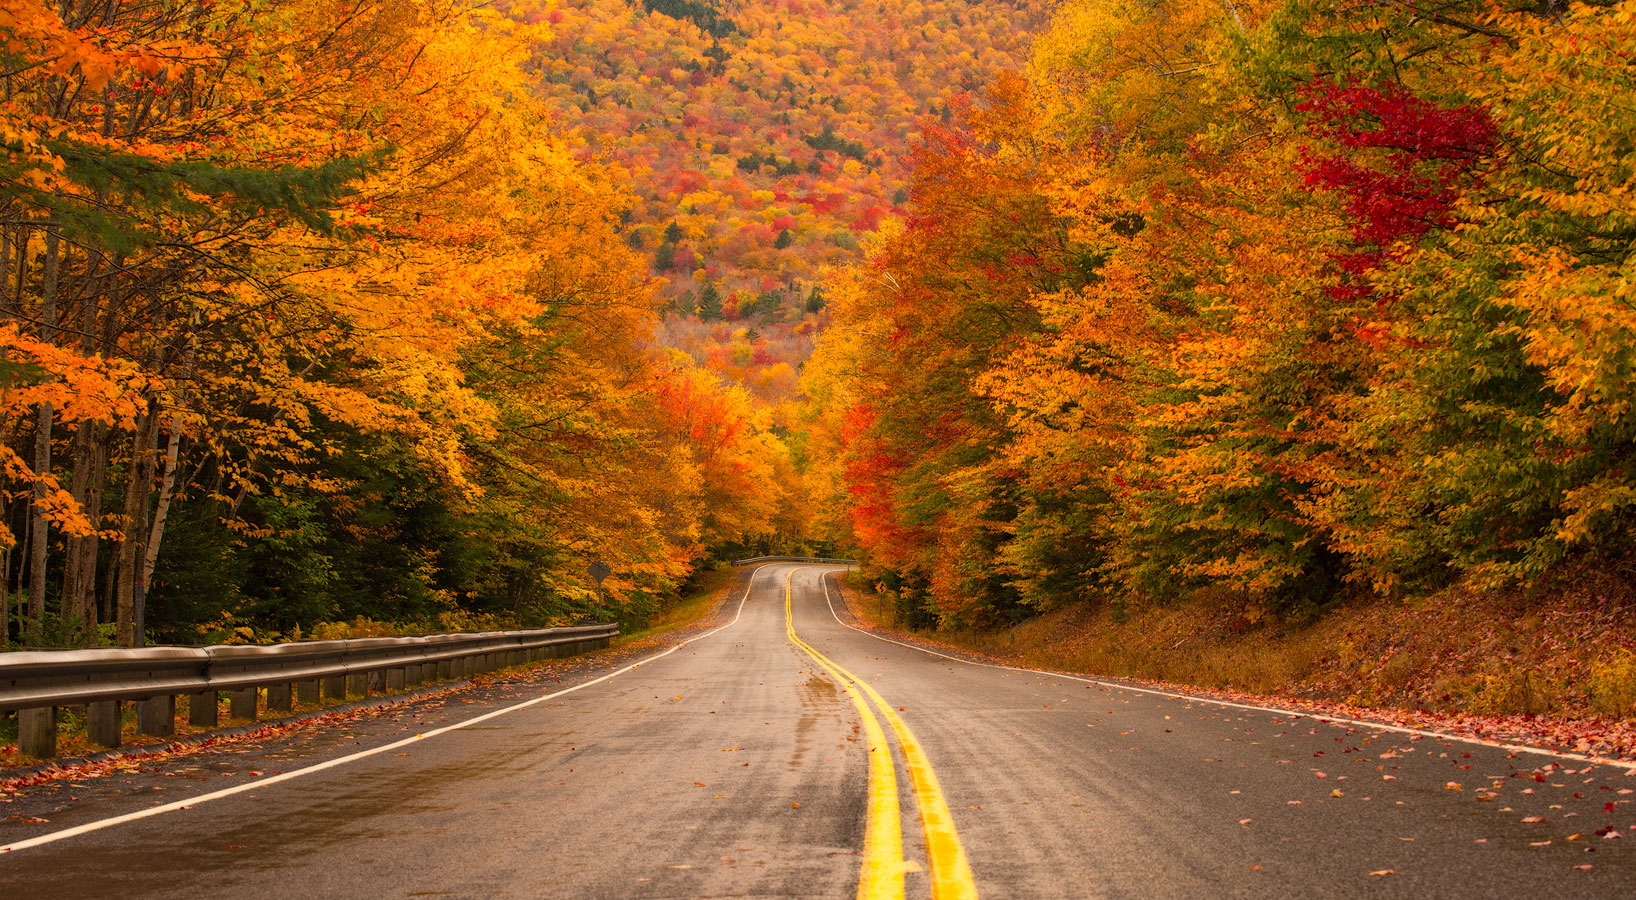 Kancamagus Highway, White Mountains, New Hampshire, Autumn, Bright, Colorful, Leaves, Fall Season, Road, Trees, photo